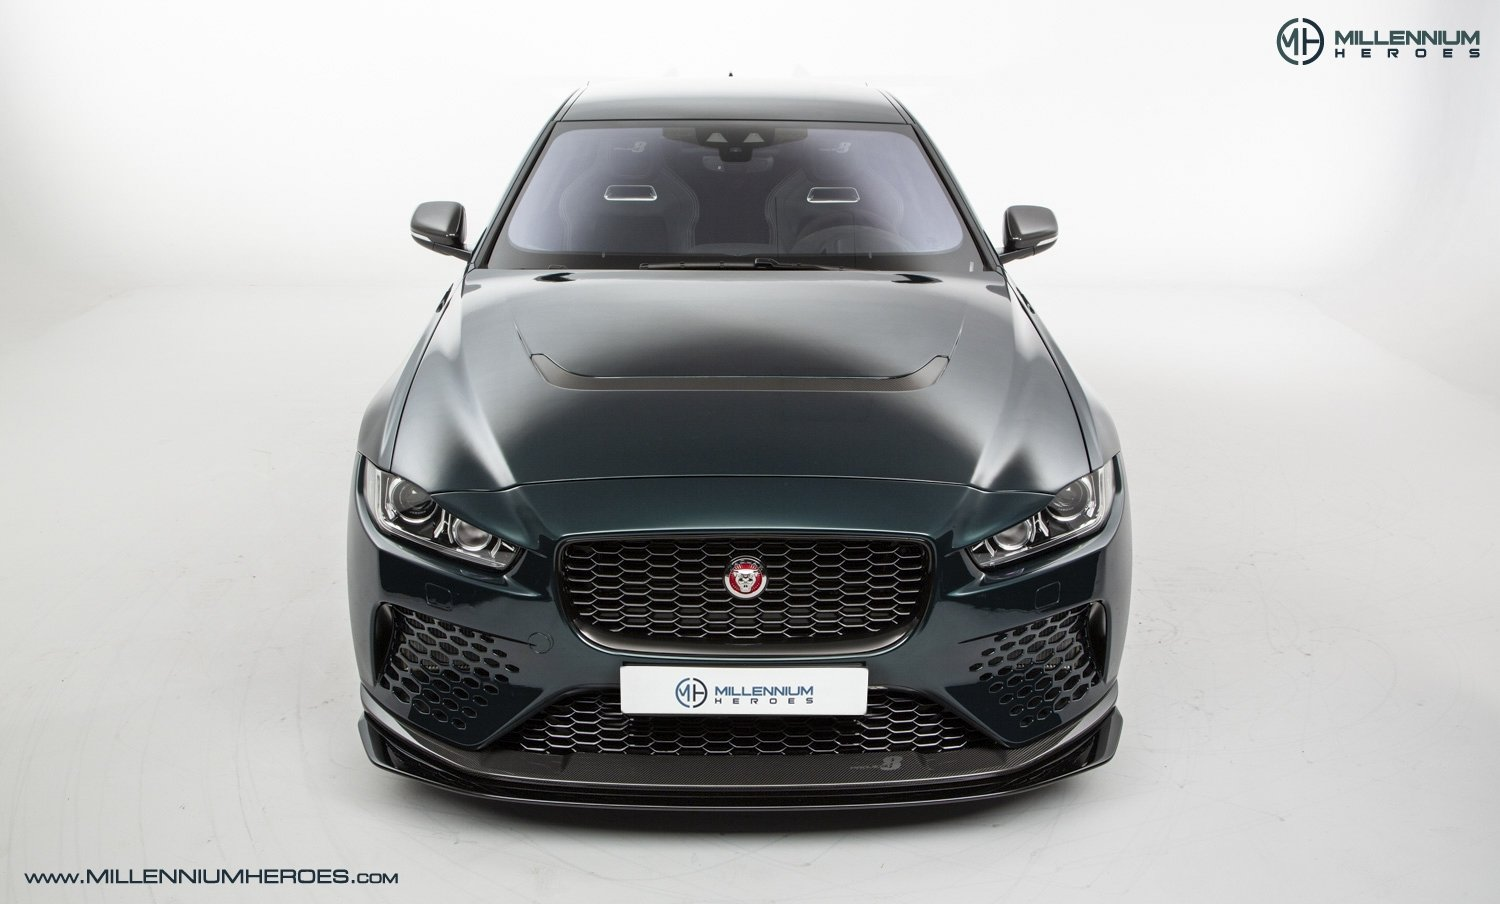 2019 JAGUAR XE SV PROJECT 8 // 1 OF 300 // 1K MILES // 1 OWNER  For Sale (picture 3 of 24)